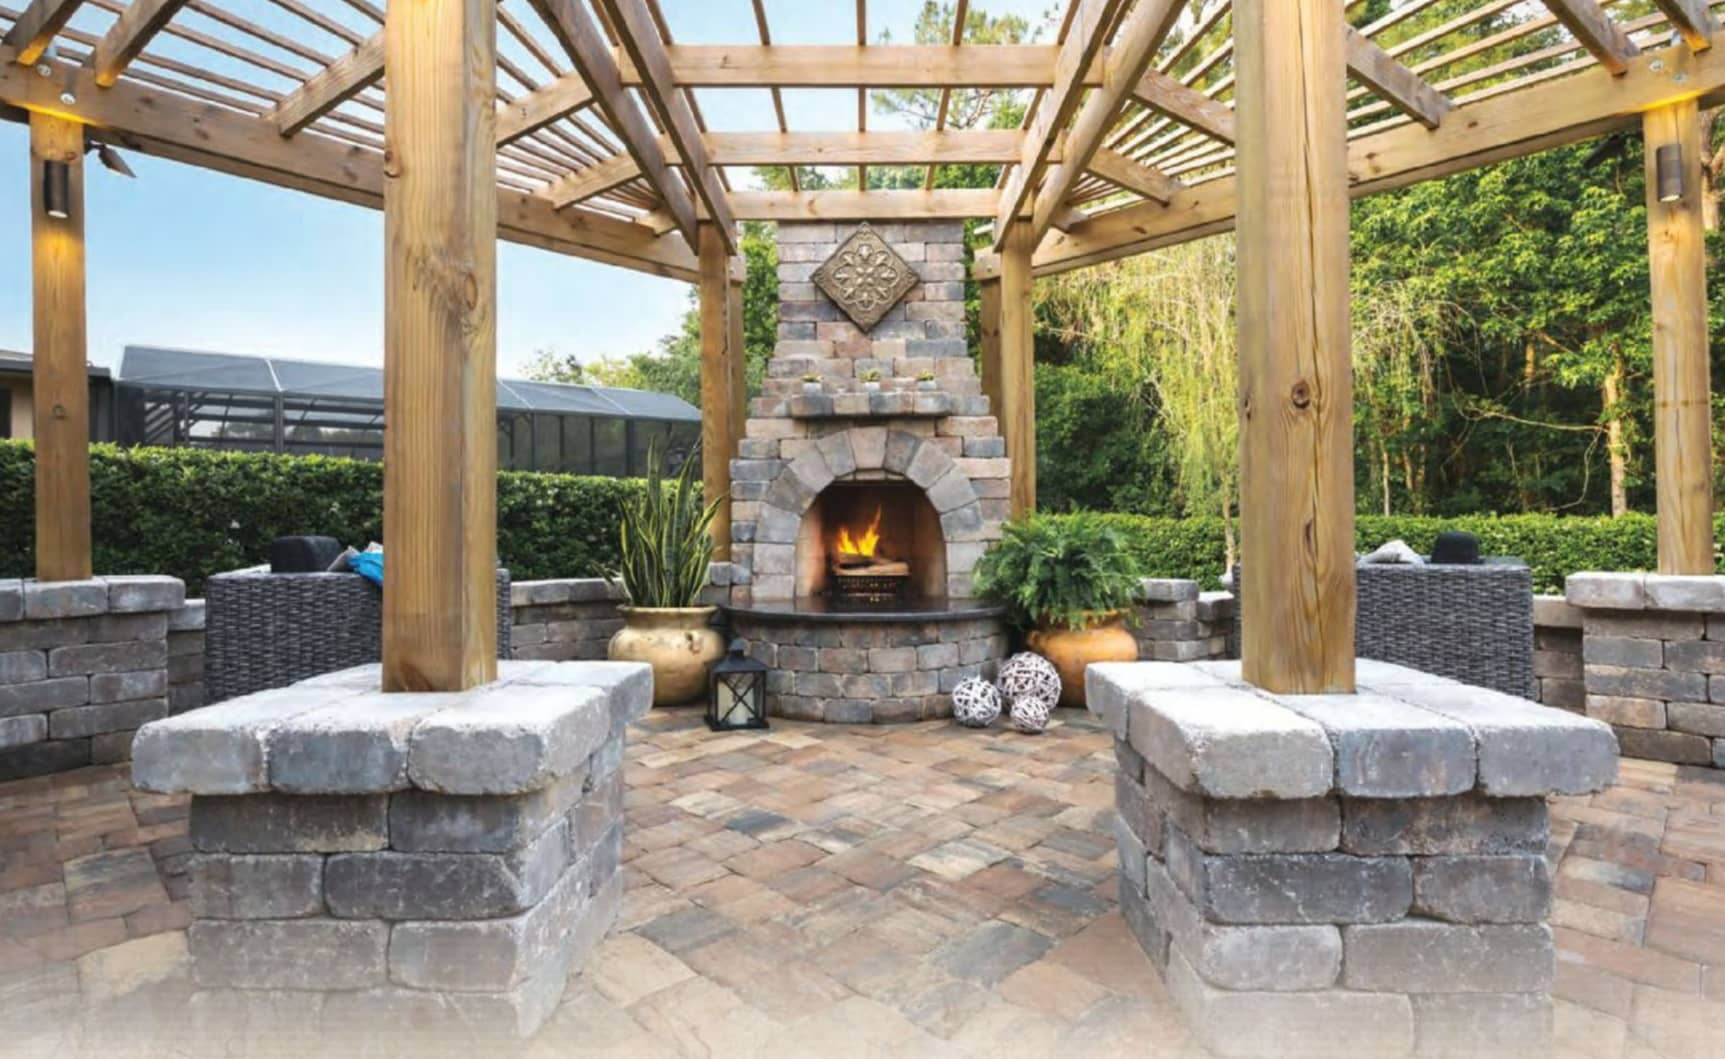 How To Give Your Outdoor Space A Fresh Look